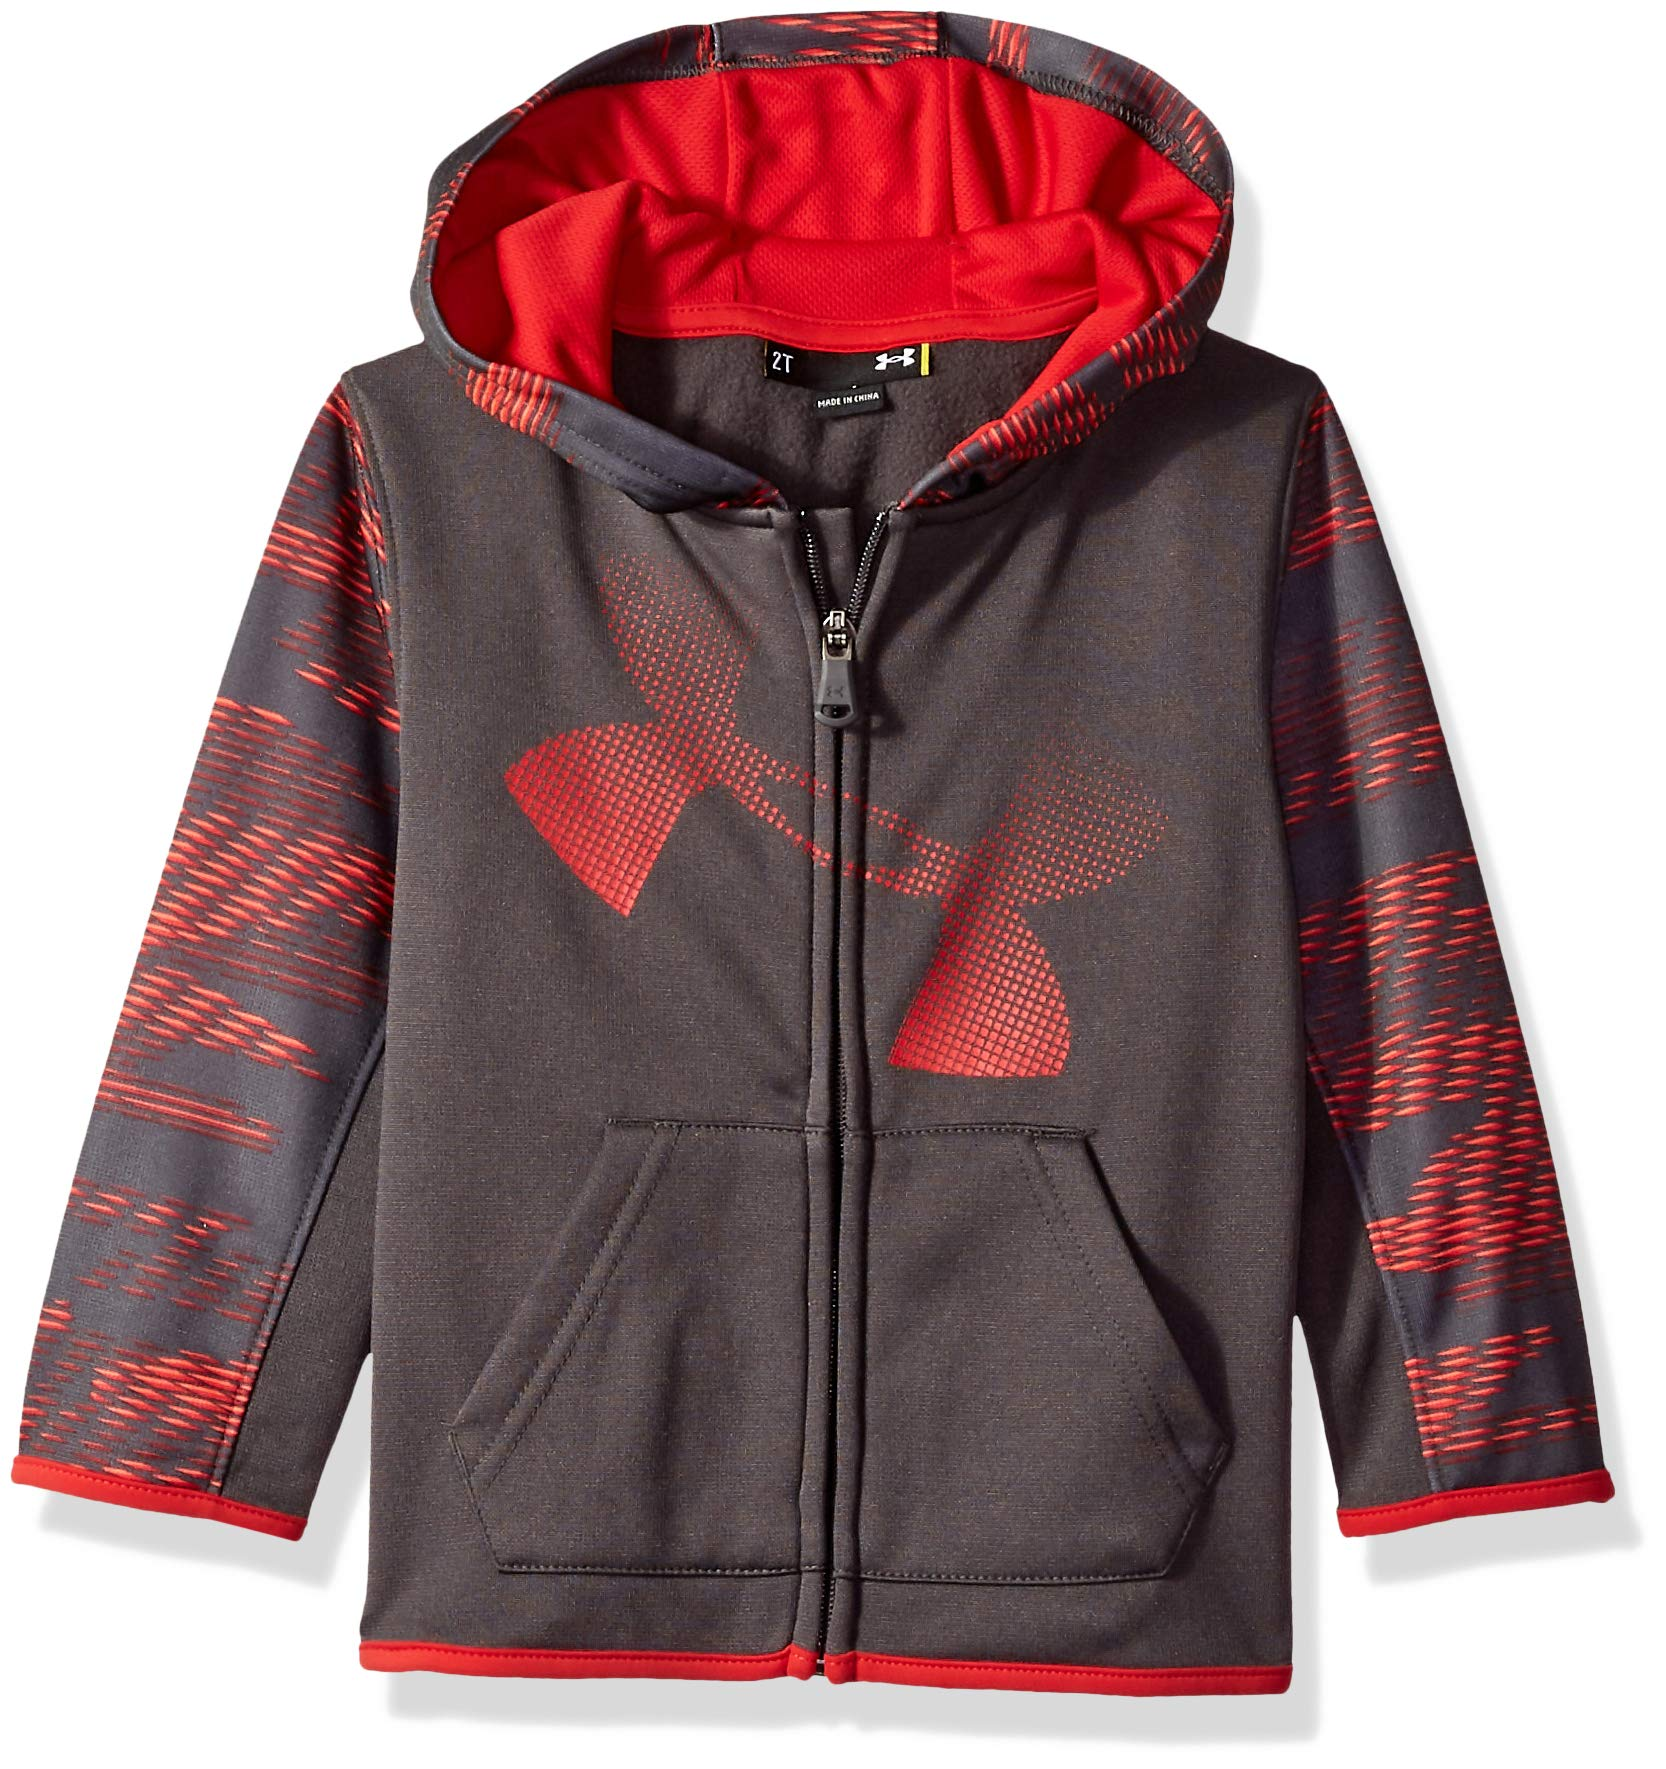 Under Armour Boys' Toddler Zip Up Hoody, Charcoal Travel, 3T